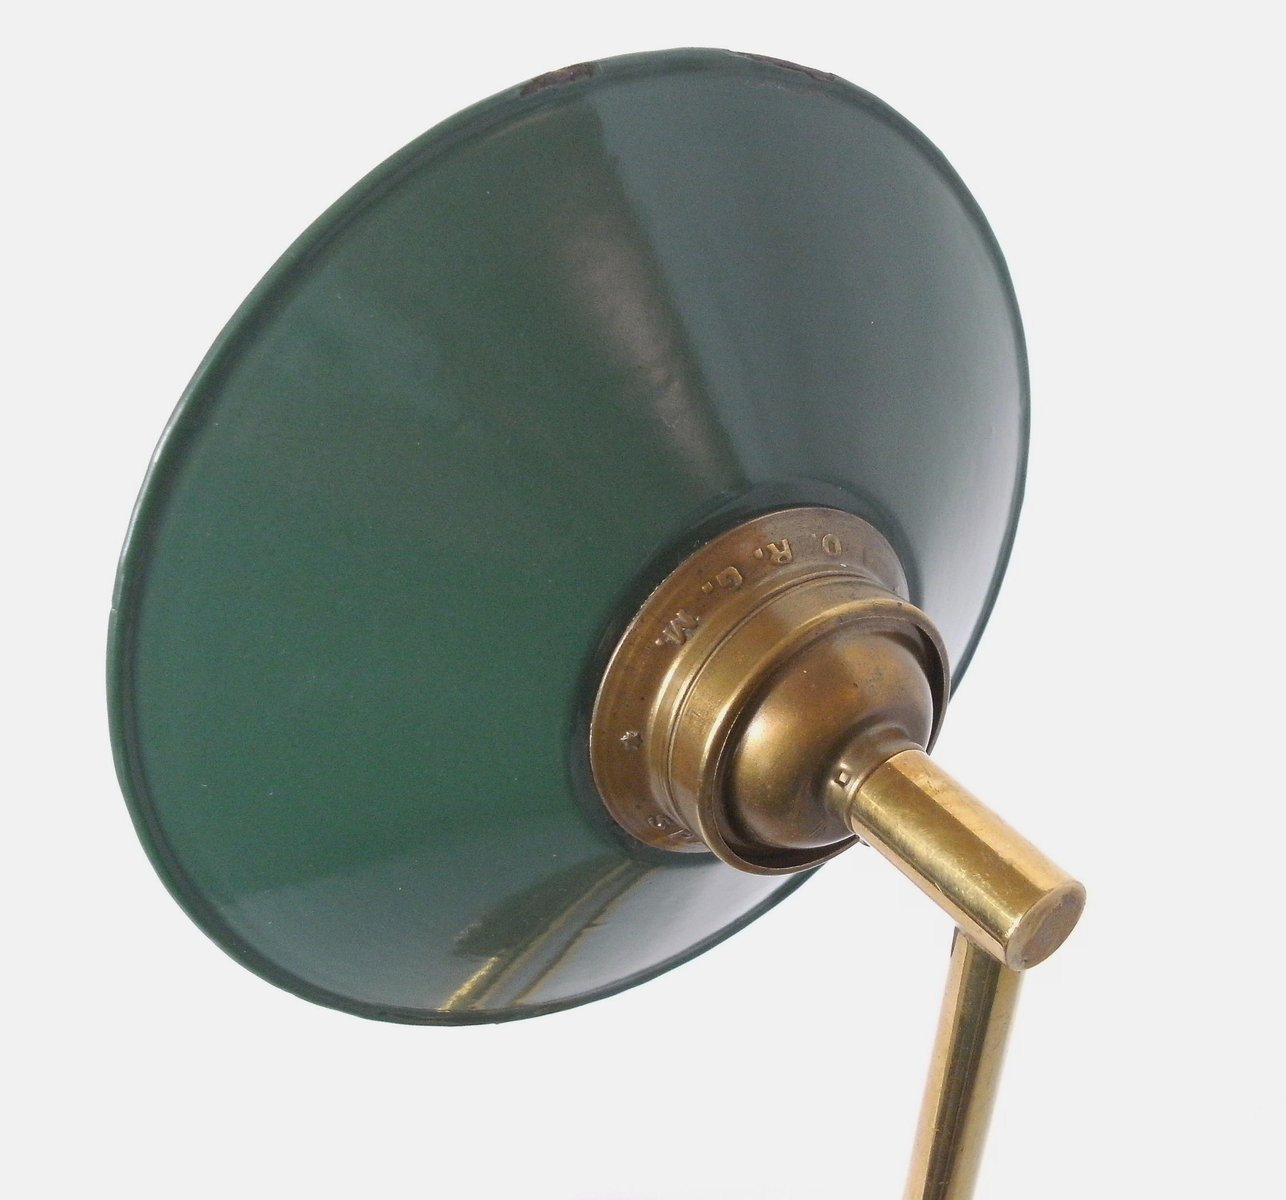 Small Brass Amp Enamel Wall Lamp For Sale At Pamono